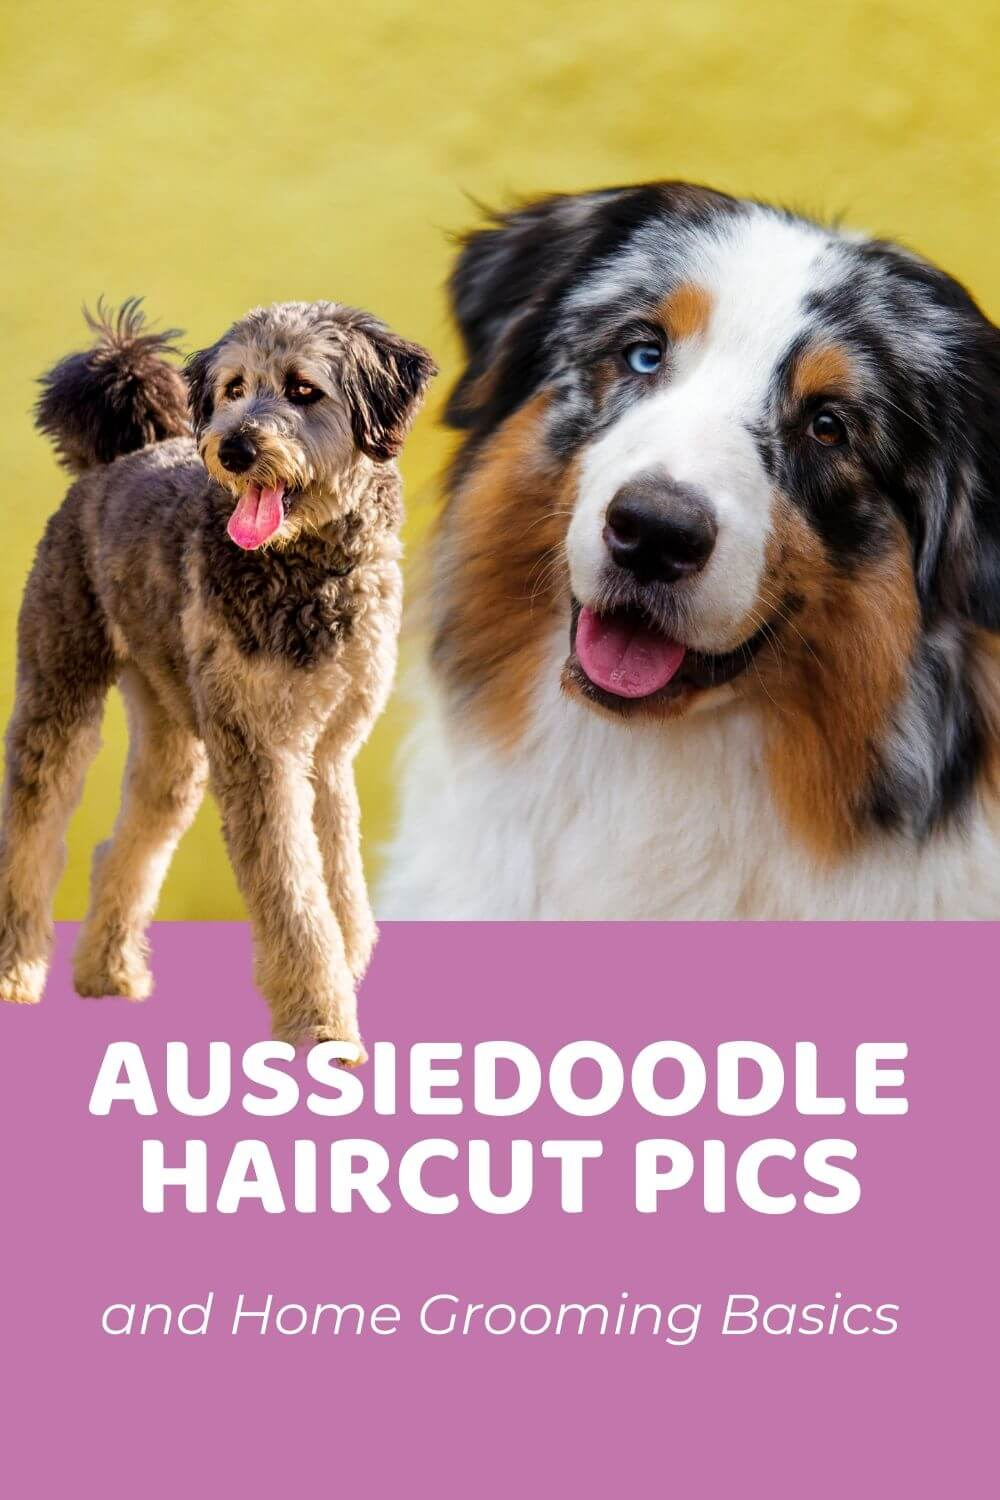 Aussie Haircut : aussie, haircut, Aussiedoodle, Haircuts, (With, Pictures), Grooming